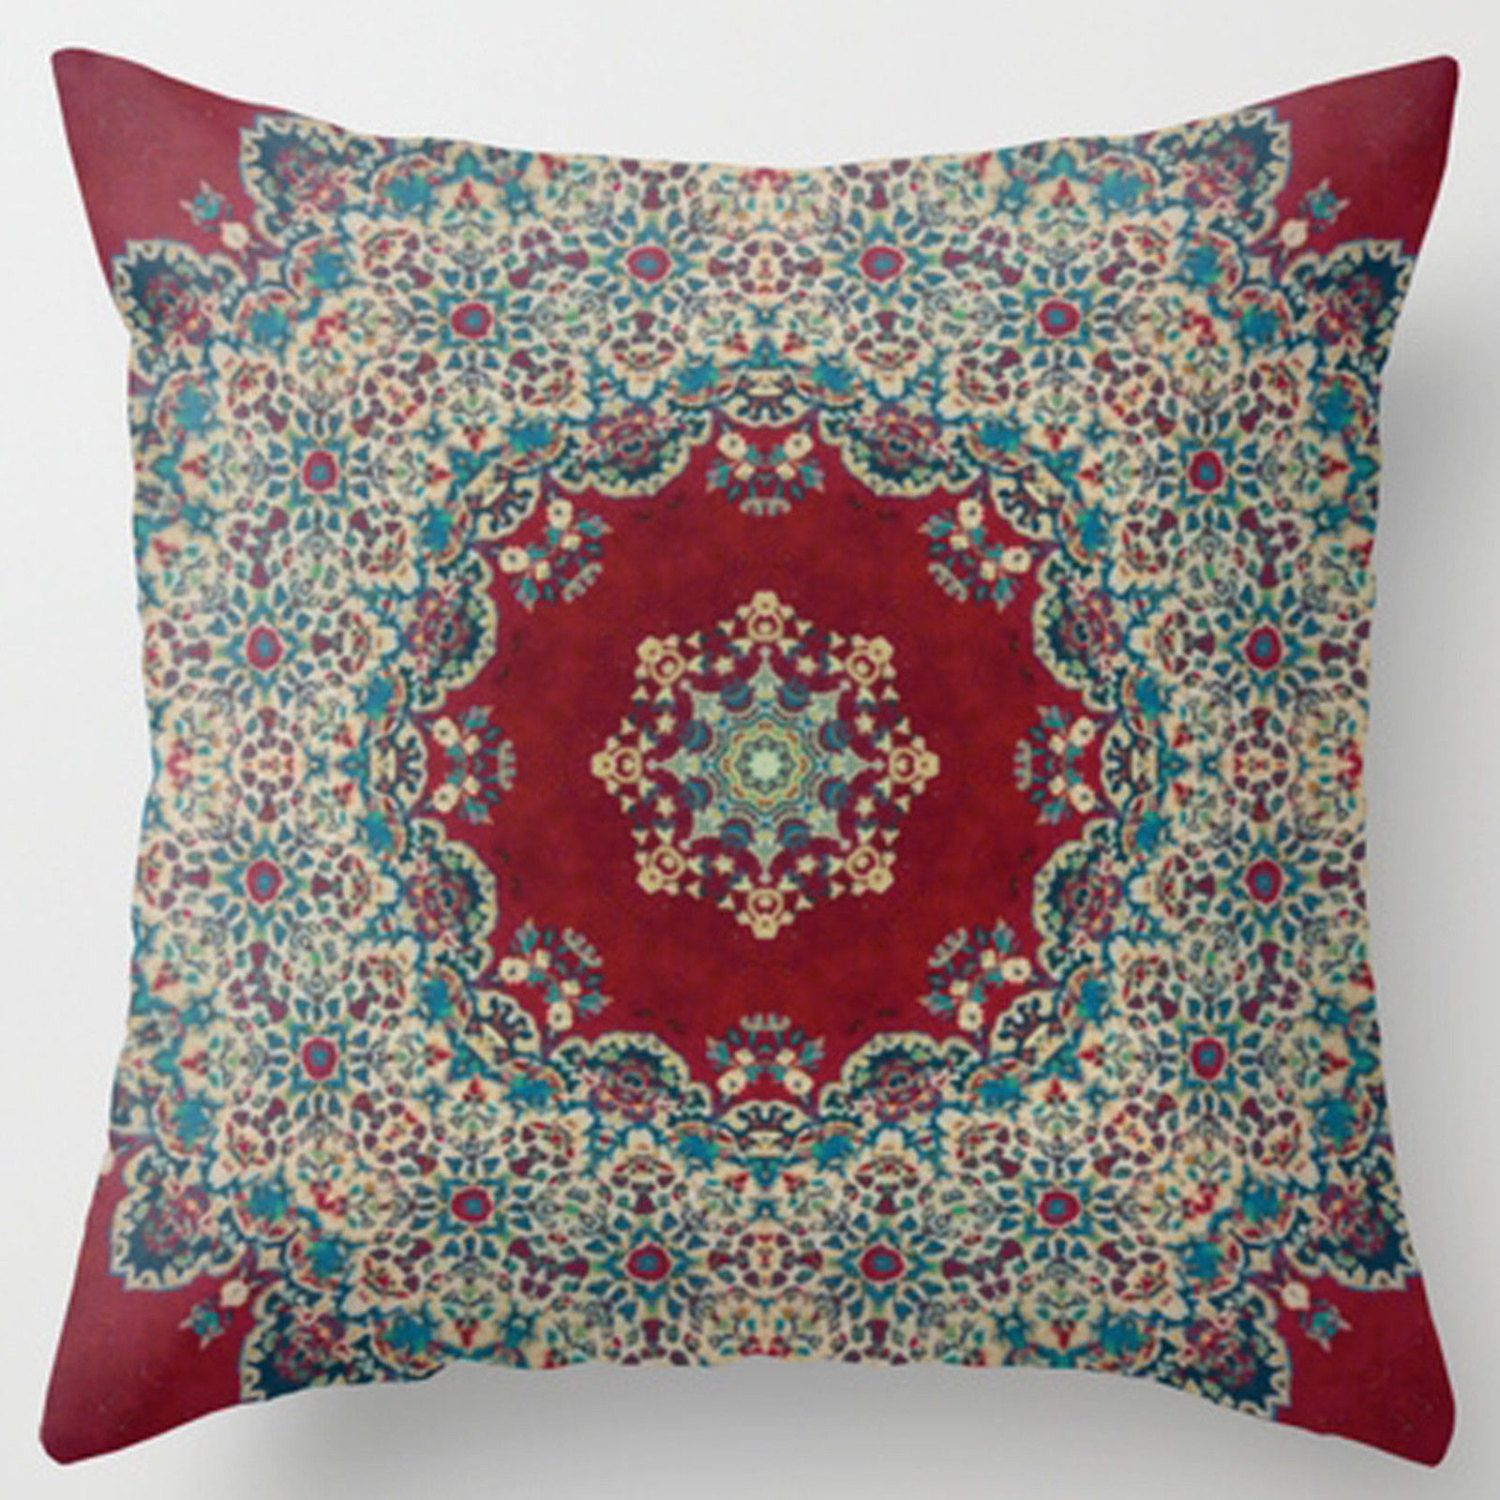 "Indian BoHO 18"" x 18"" SQUARE CuSTOM Throw Accent Toss PiLLOW Case"